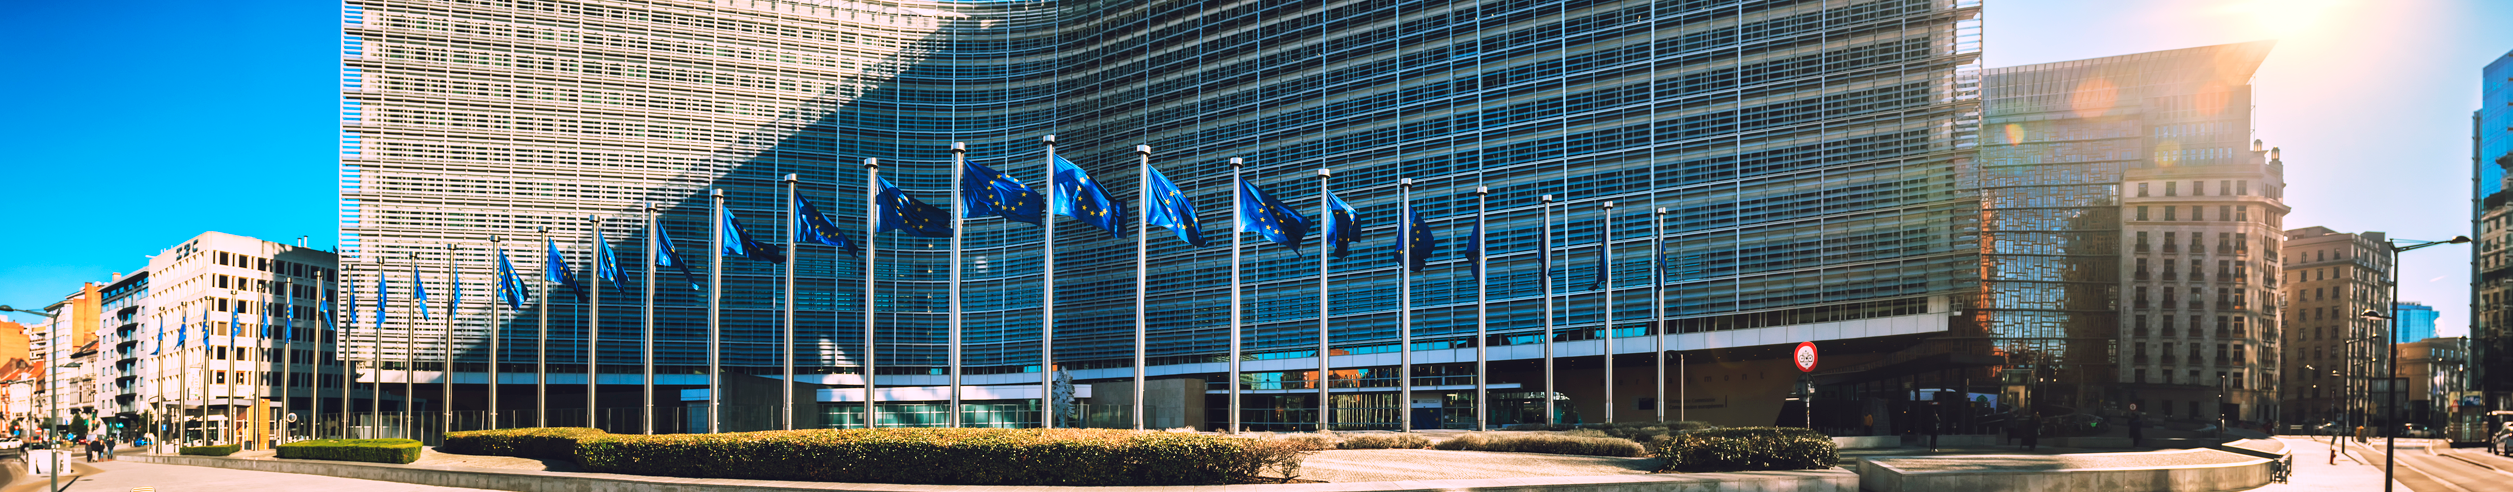 The U.A.E. - Brussels, Belgium - Berlaymont building